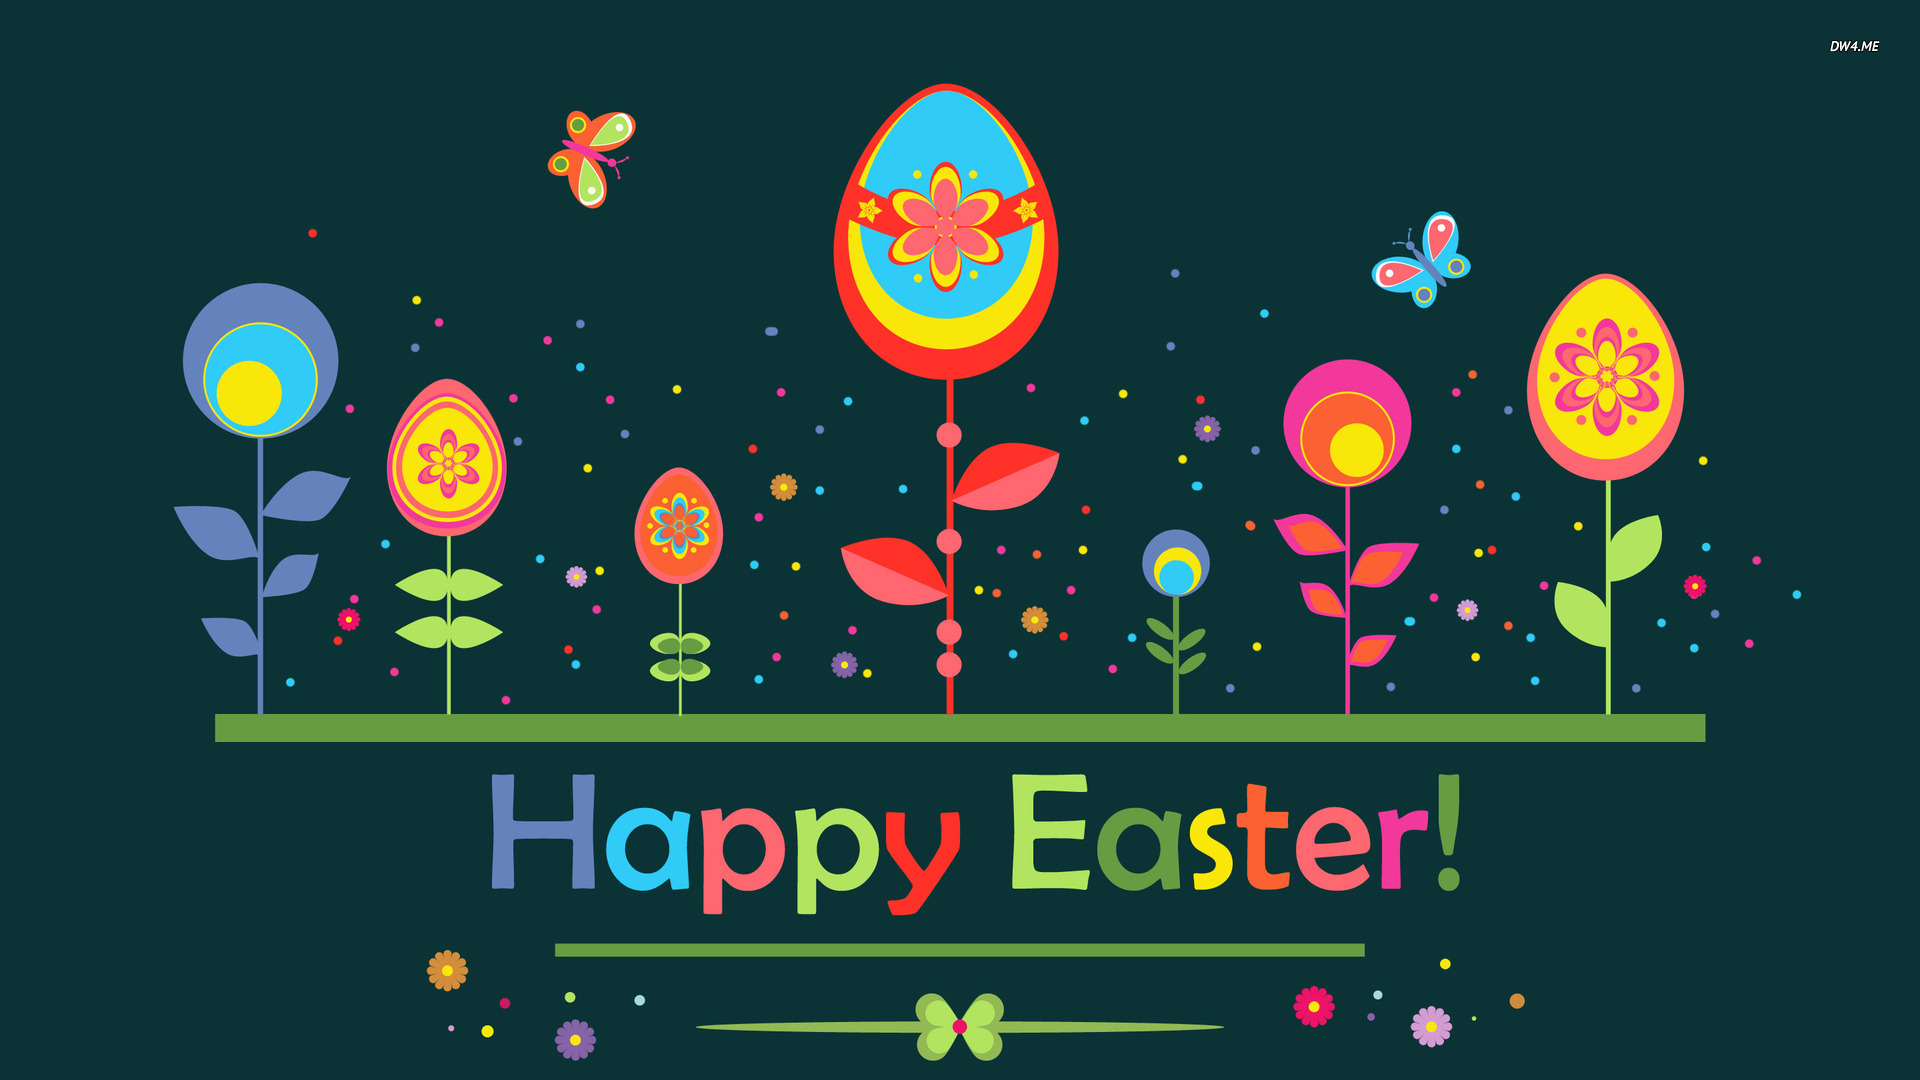 Happy Easter Images for Desktop collection 45 1920x1080